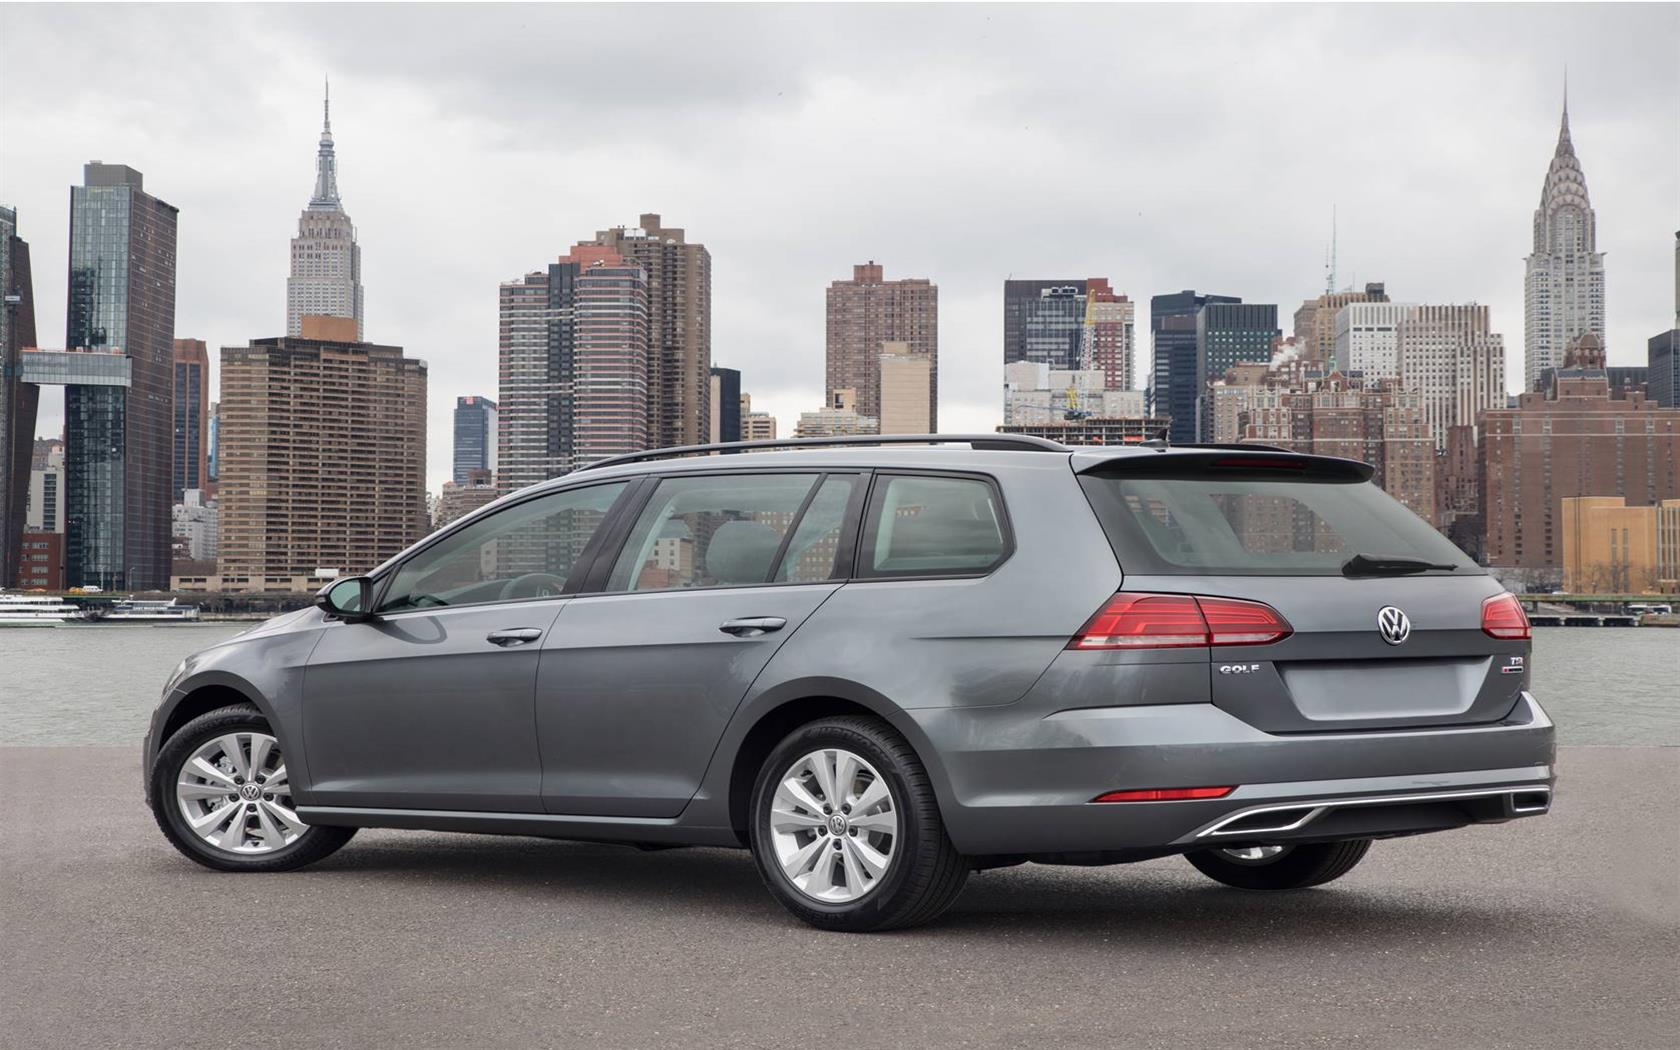 2020 Volkswagen Golf SportWagen News and Information - .com